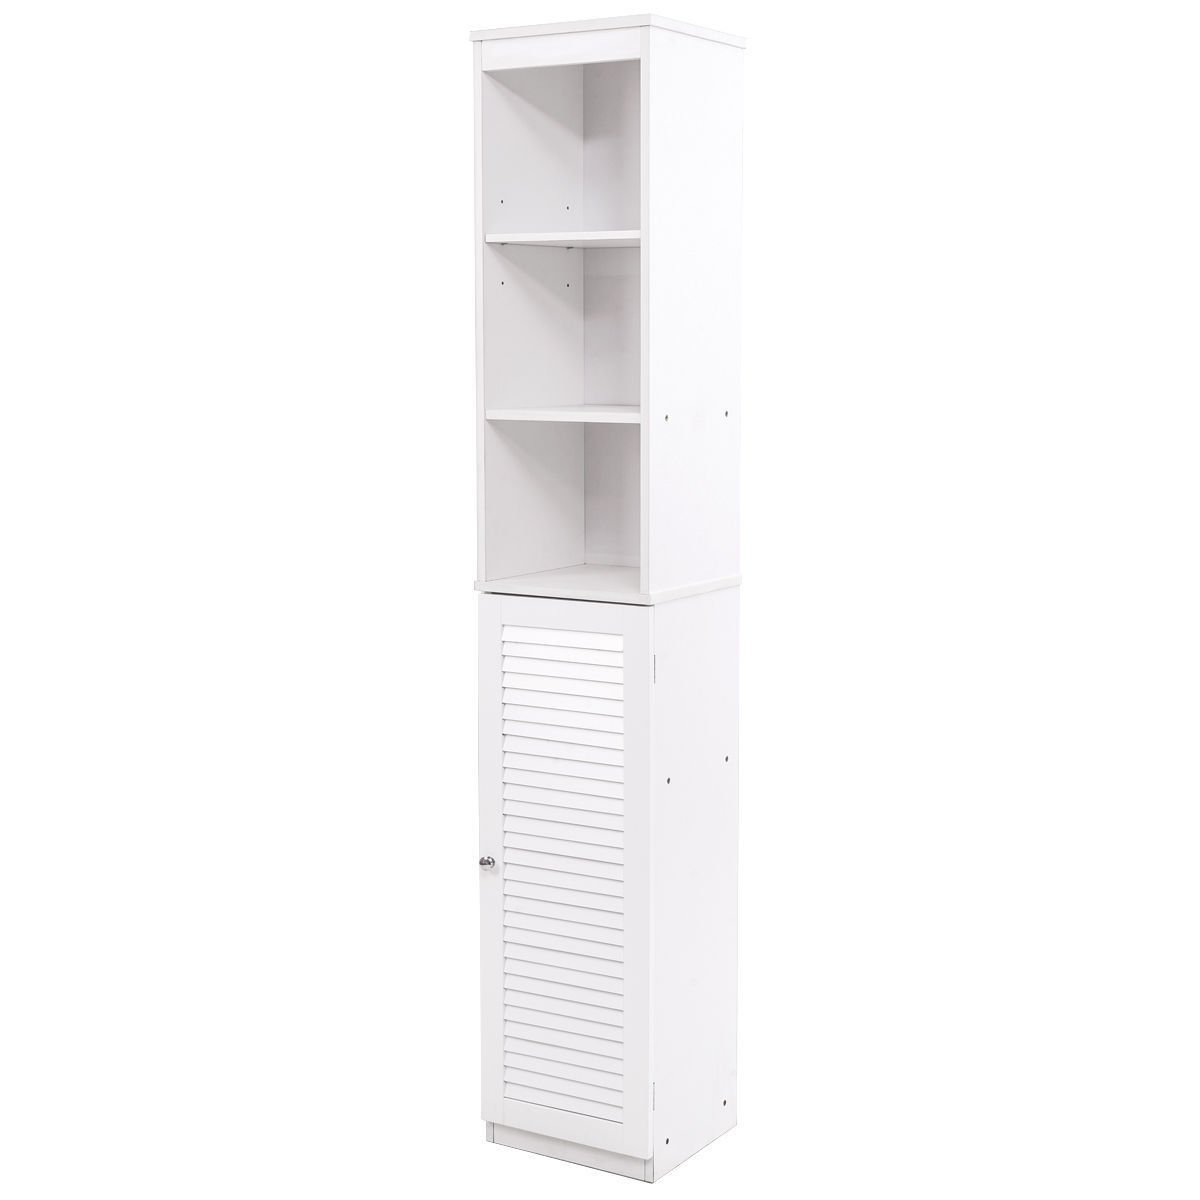 "Tall Bathroom Tower 71"" Cabinet Louvered Shelf Organizer Storage Wood White"